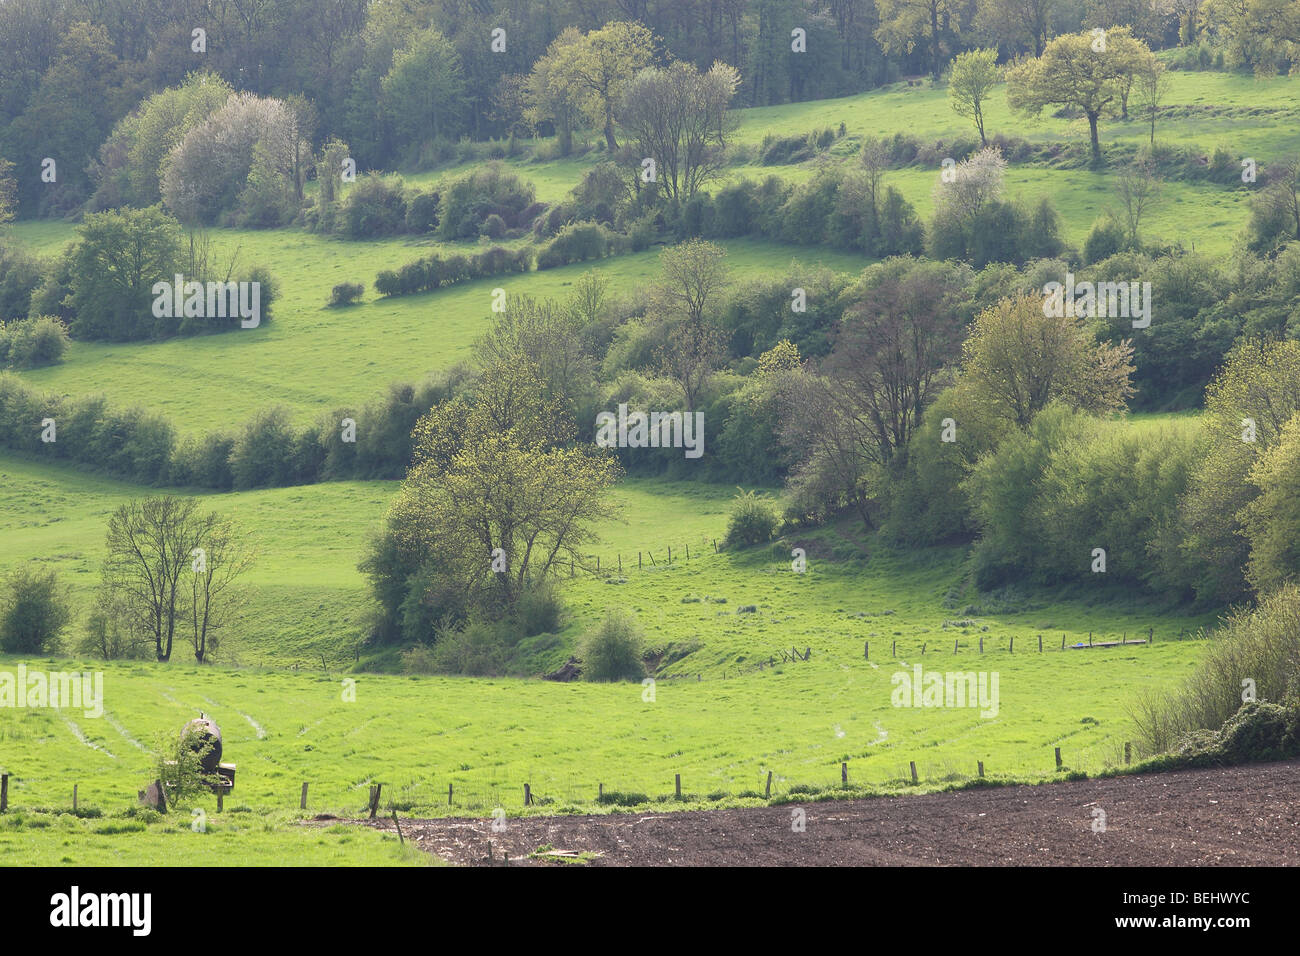 Bocage landscape with hedges and trees, Voeren, Belgium Stock Photo